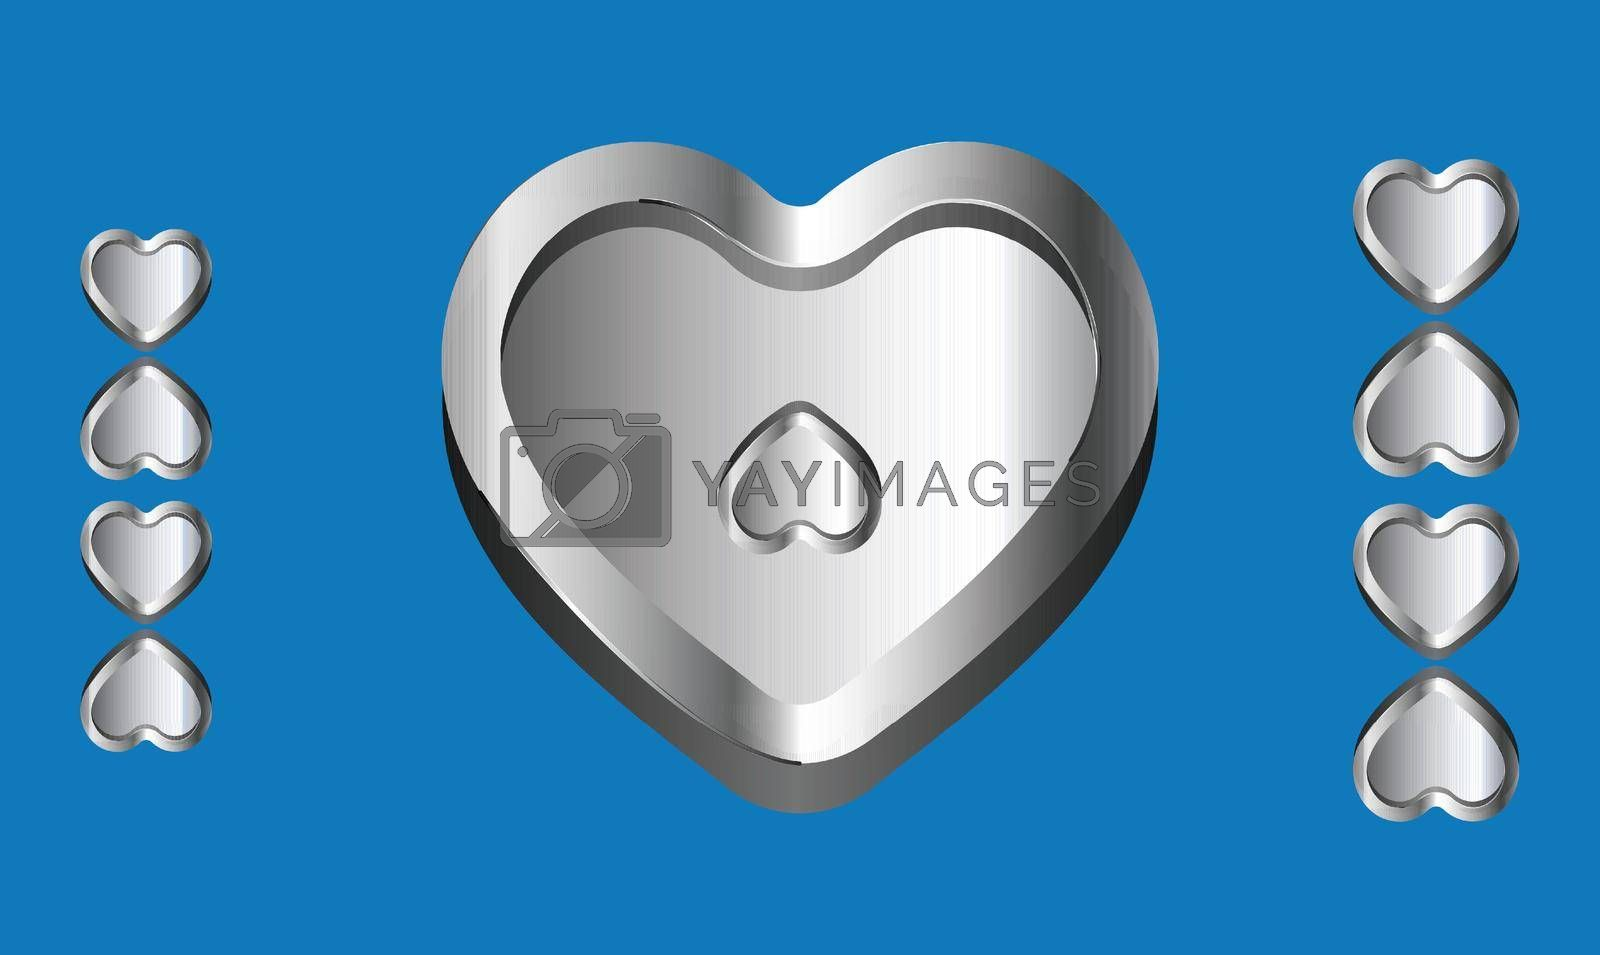 Royalty free image of various heart shape on abstract blue Background by aanavcreationsplus